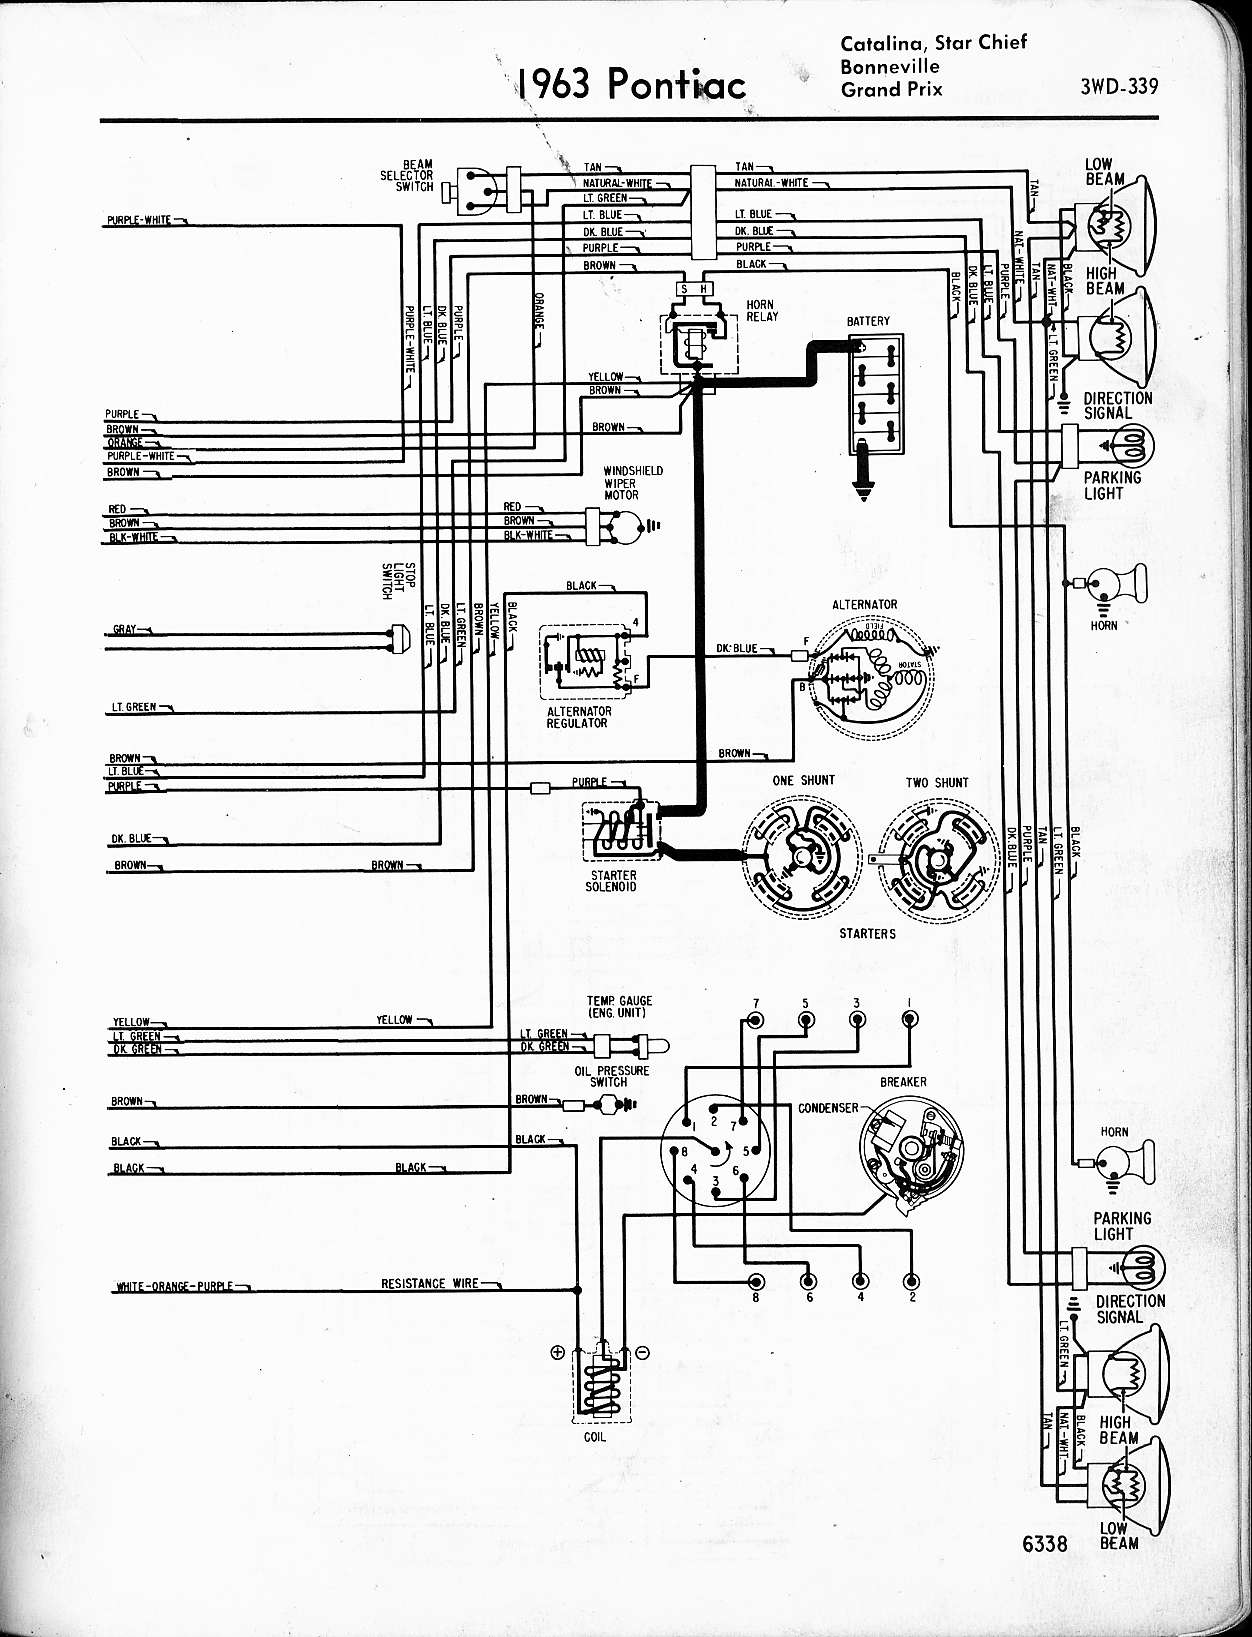 MWire5765 339 wallace racing wiring diagrams 1998 pontiac bonneville wiring diagram at bakdesigns.co